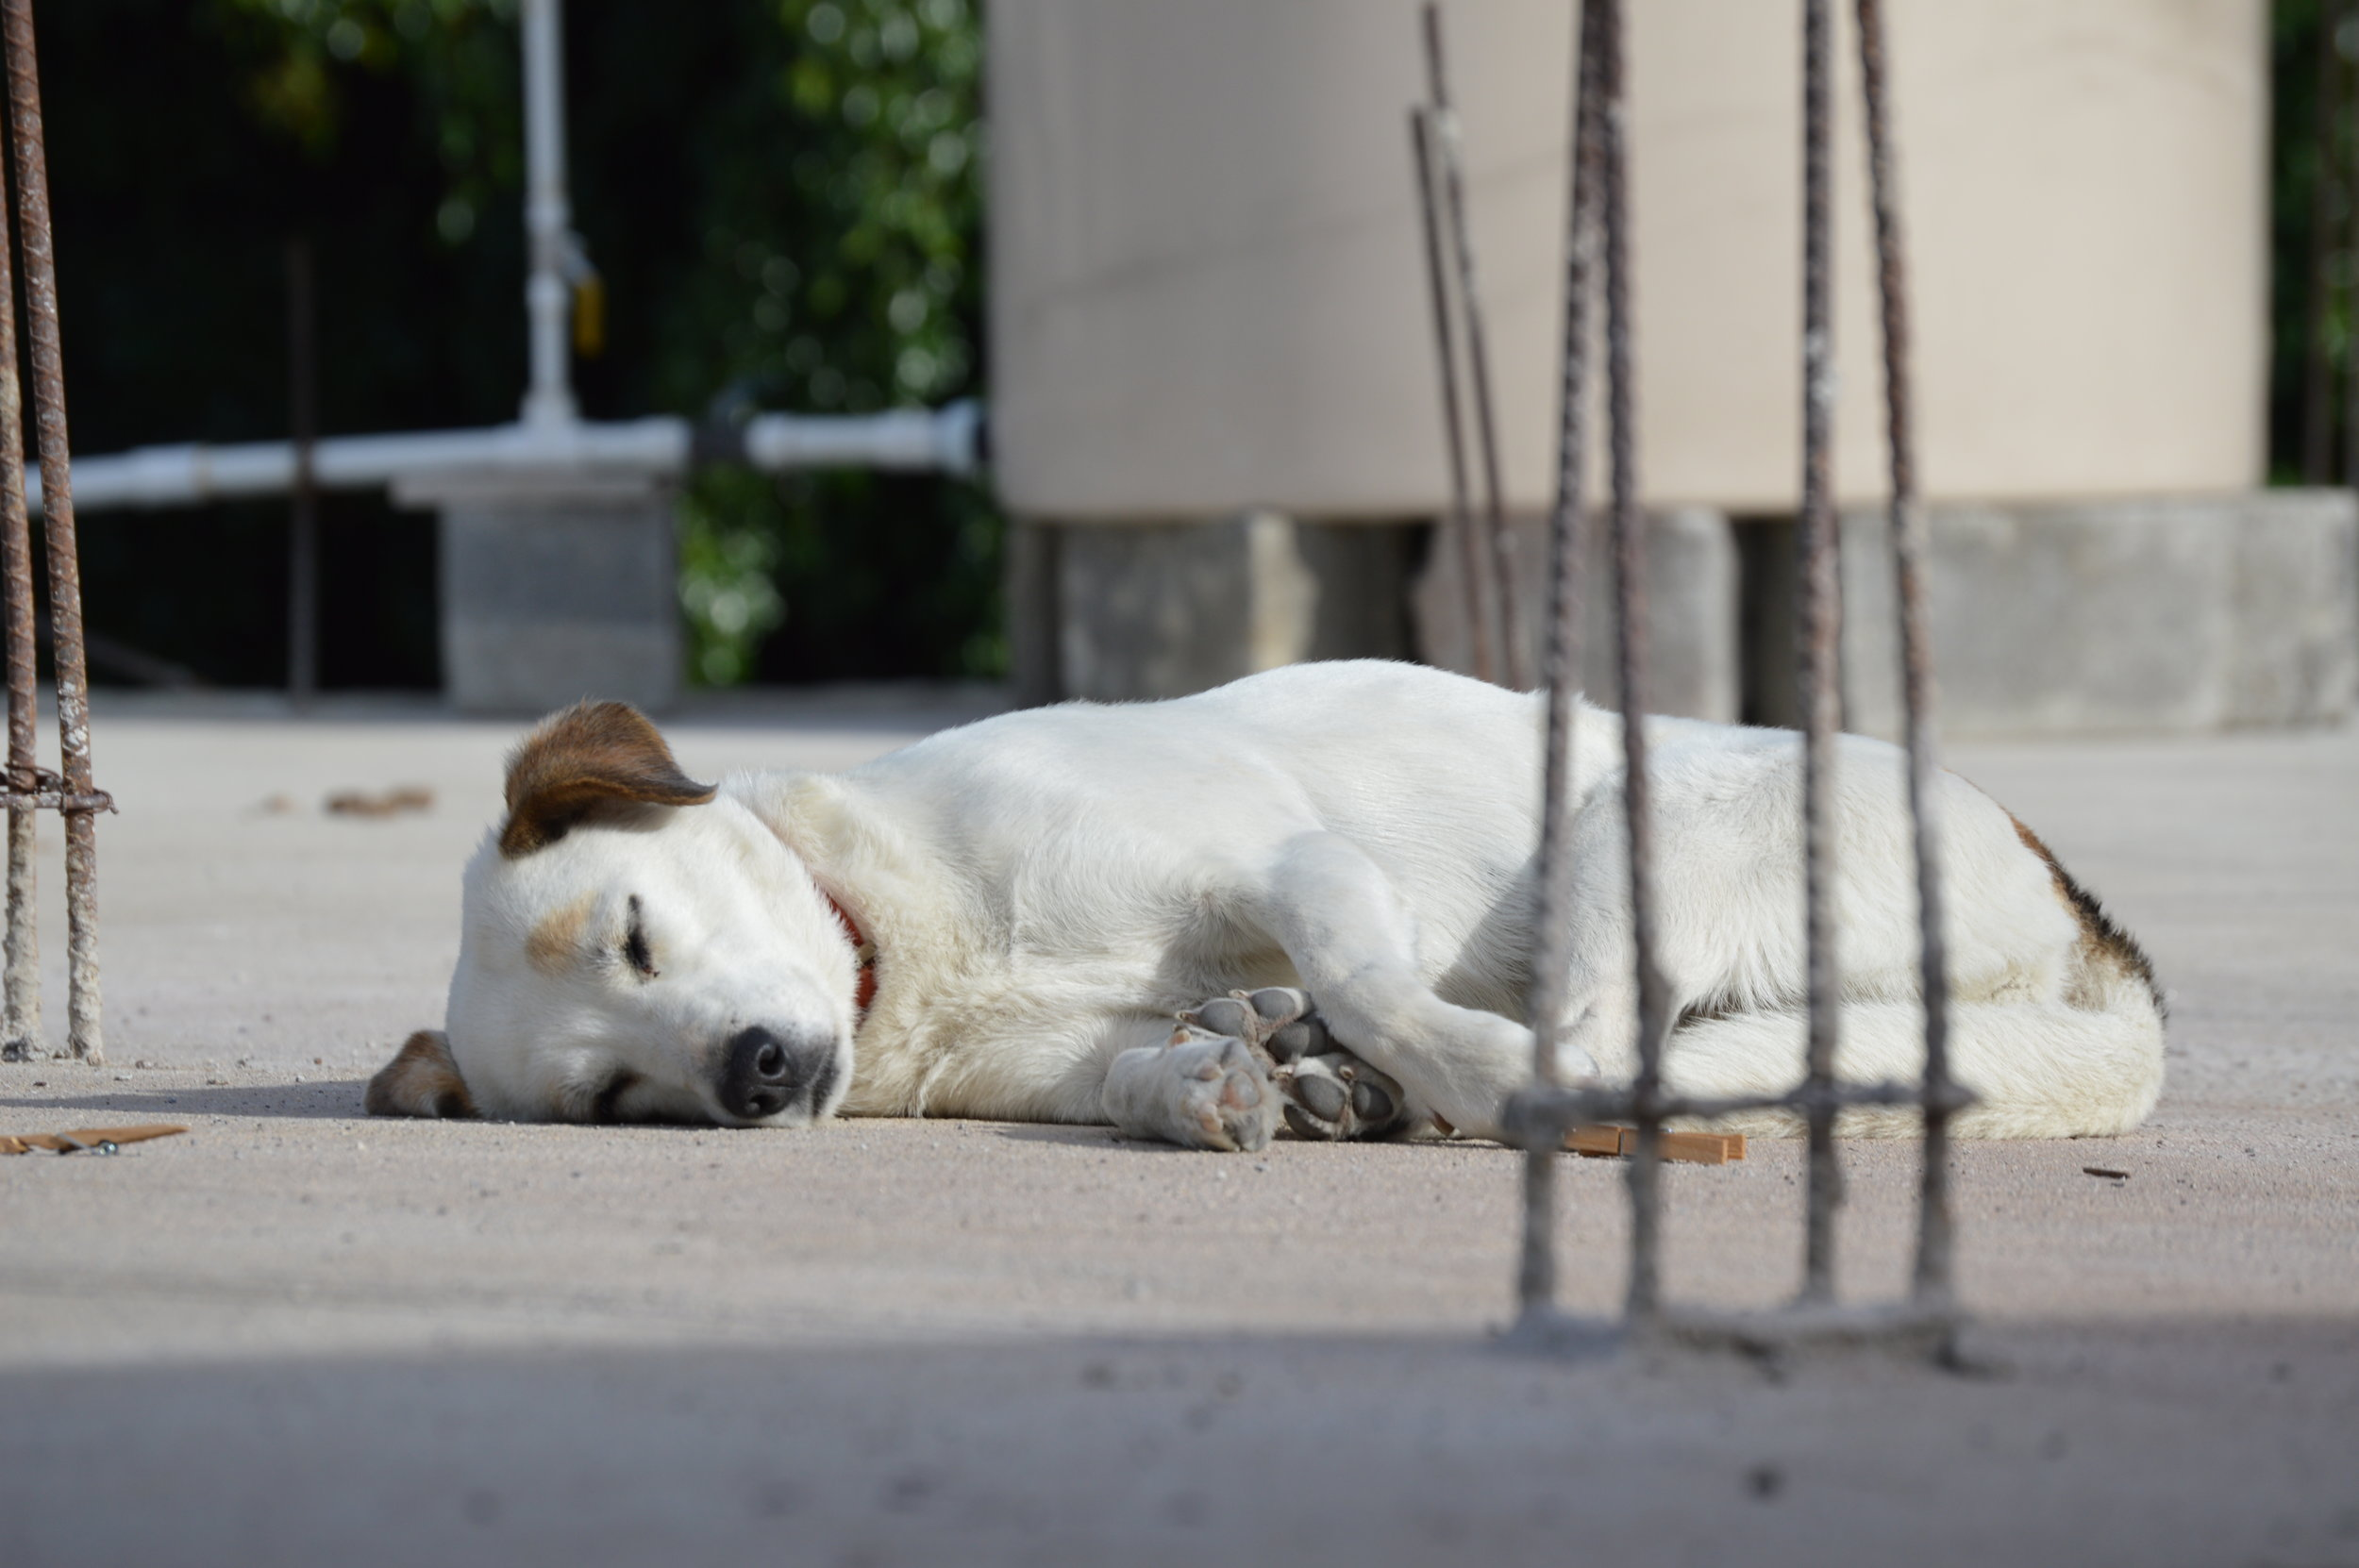 The stray dogs love to nap!